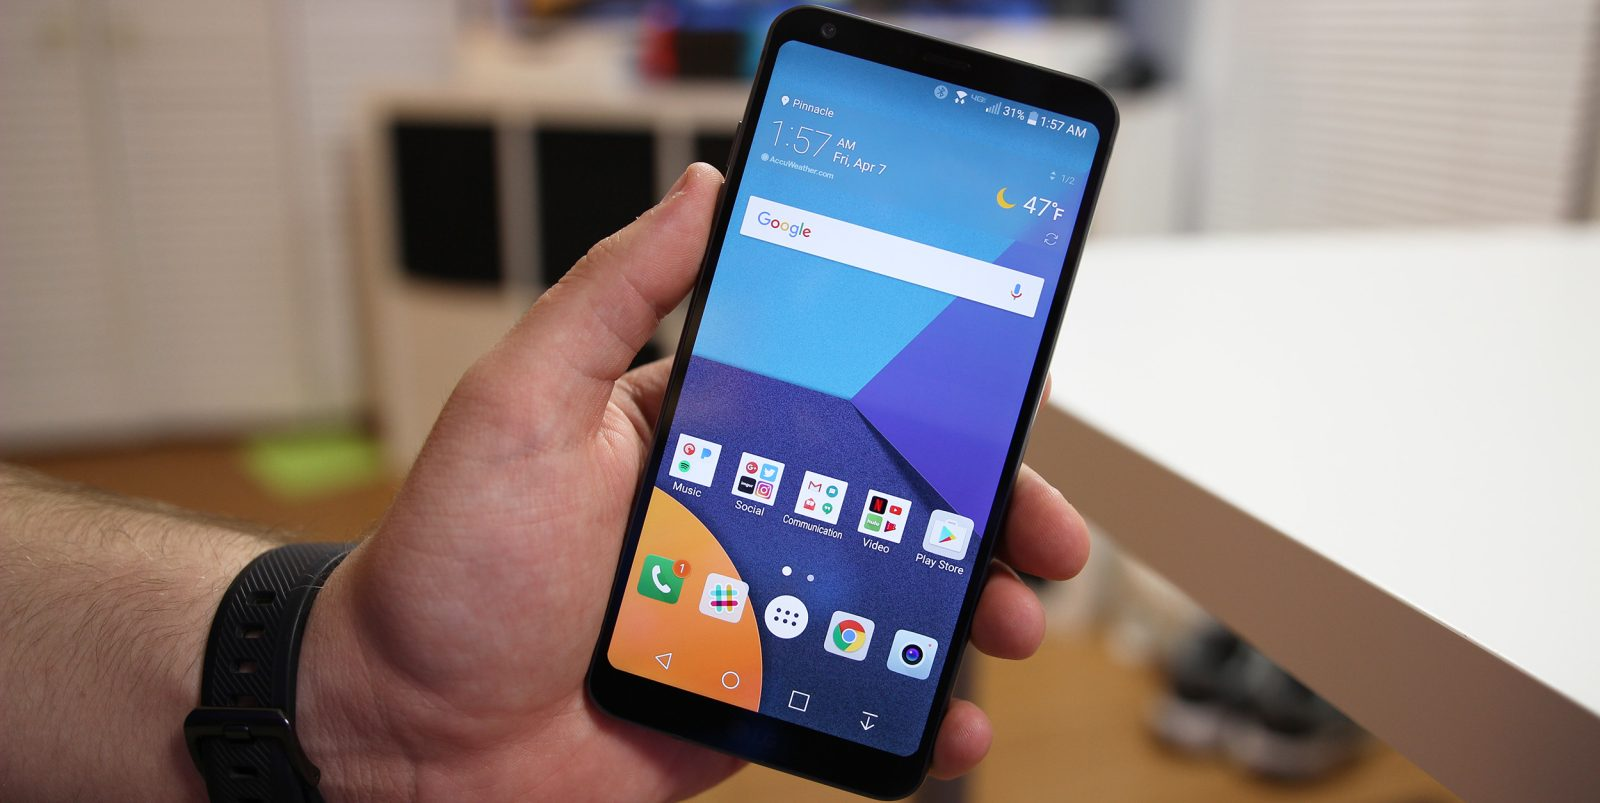 How to take a screenshot on the LG G6 - 9to5Google